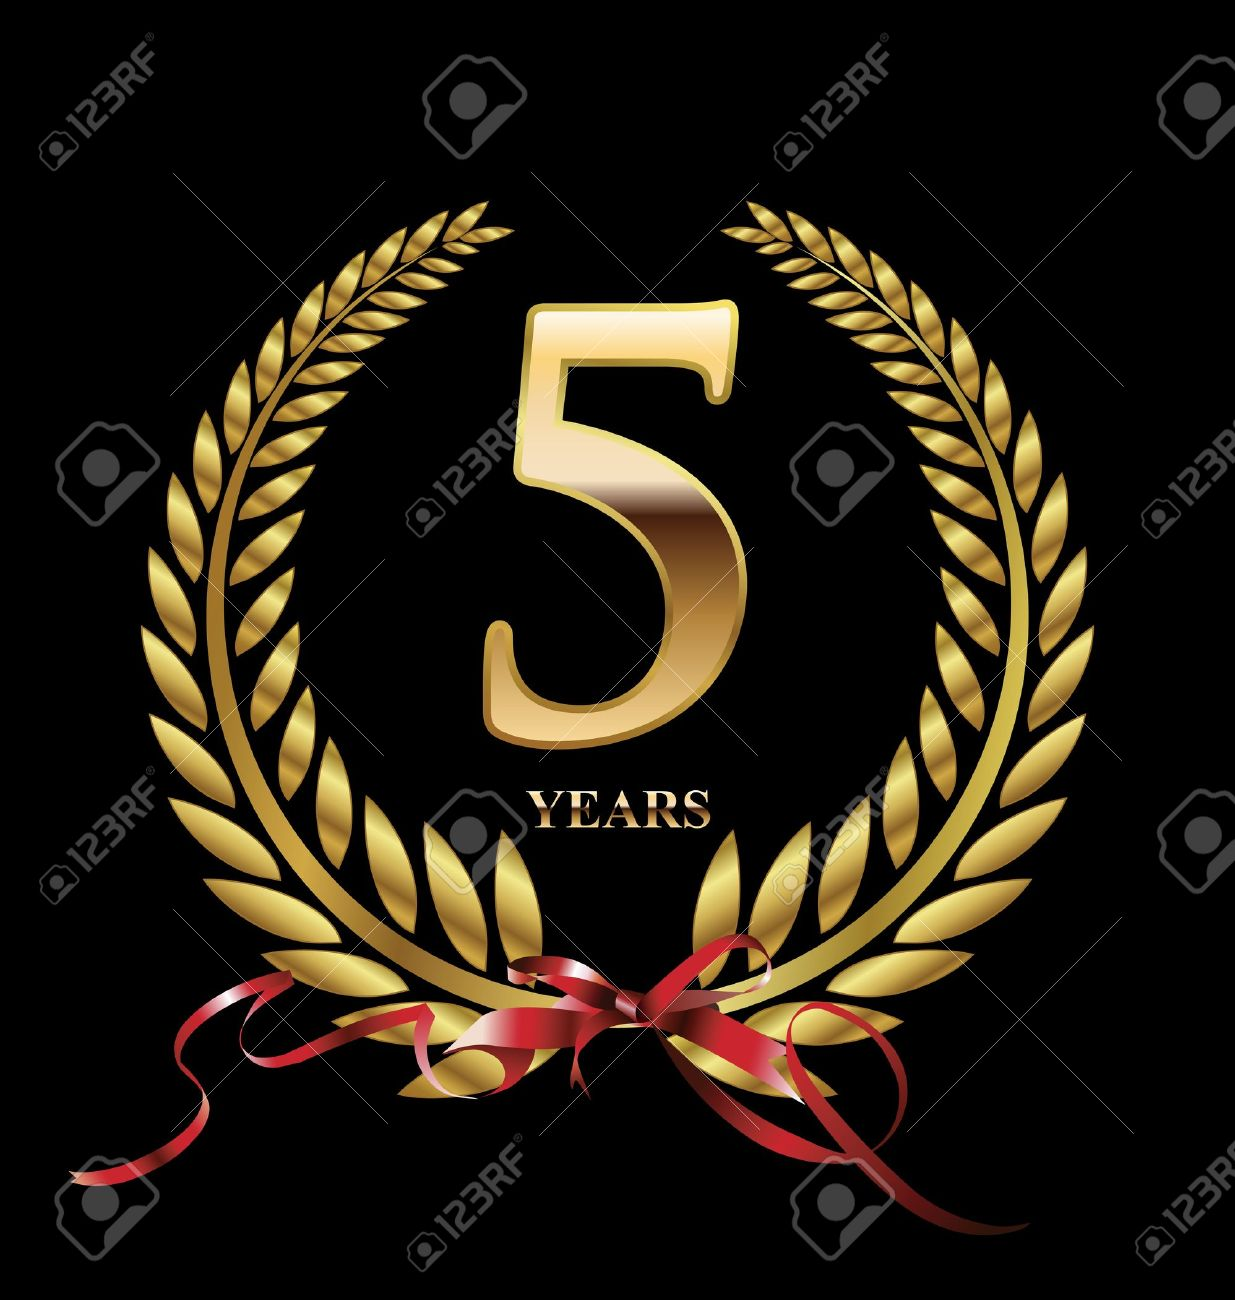 5 Years Anniversary Golden Label Royalty Free Cliparts Vectors And